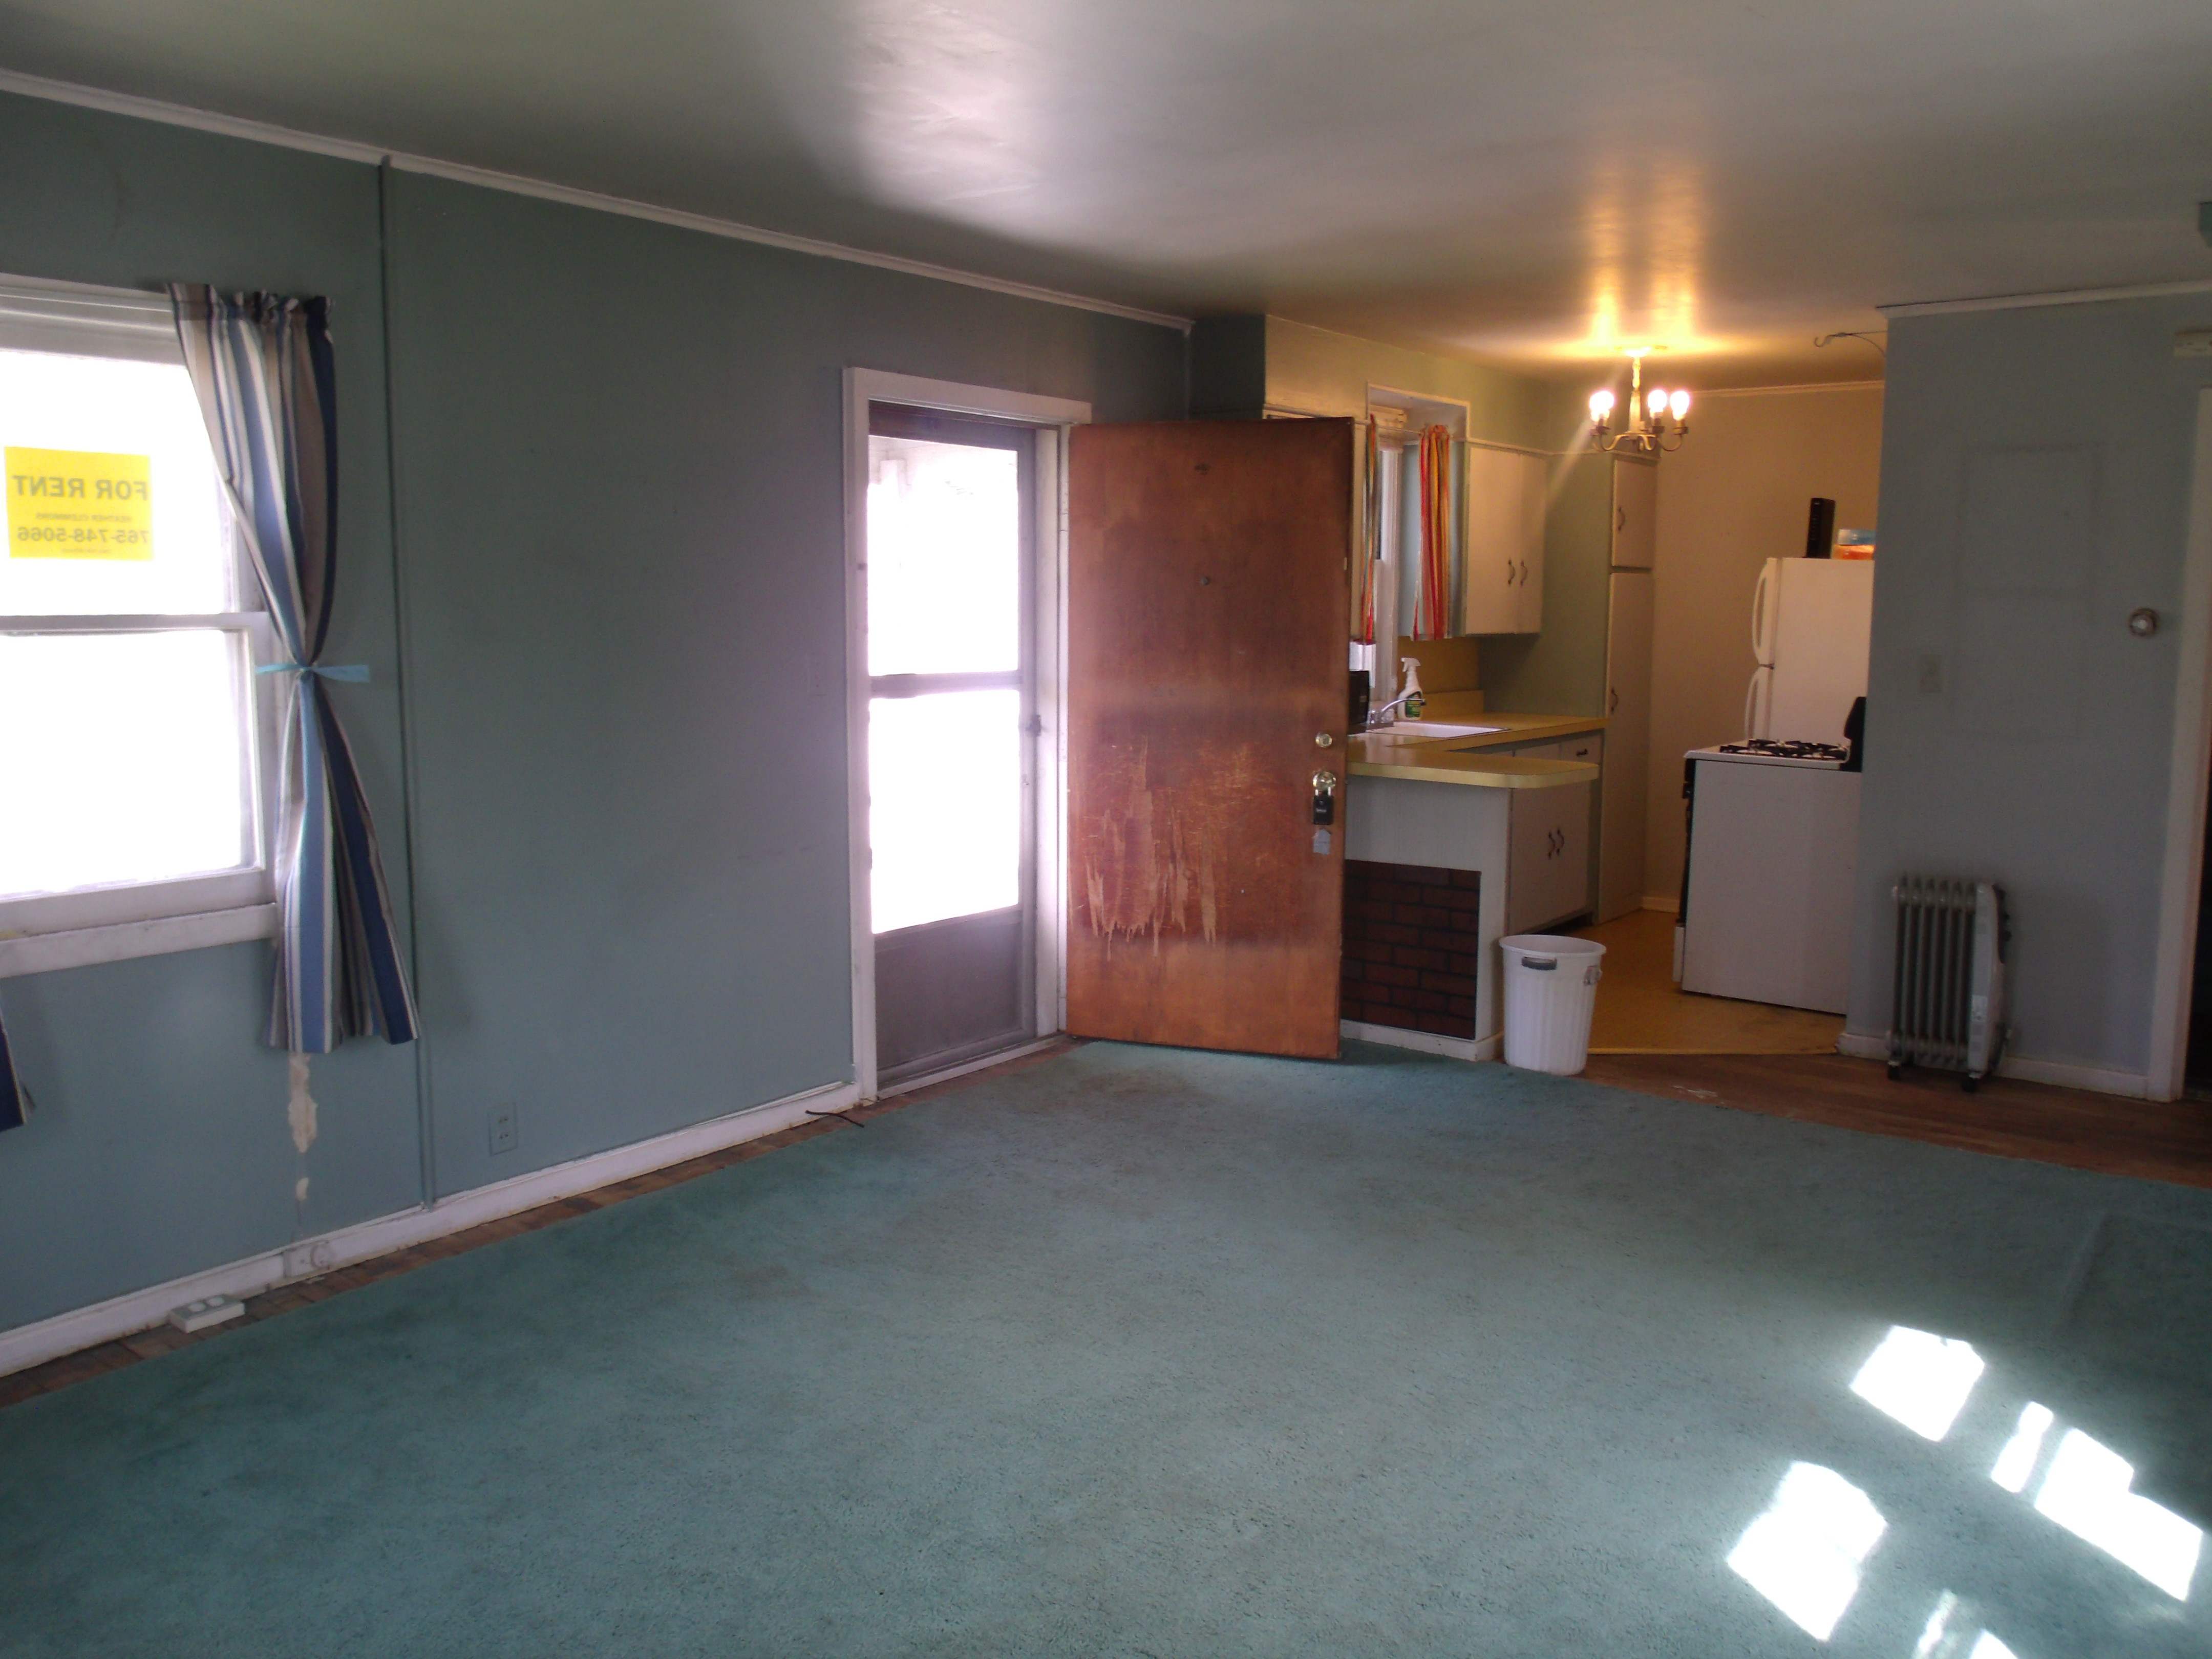 August 1, 2018 Lease